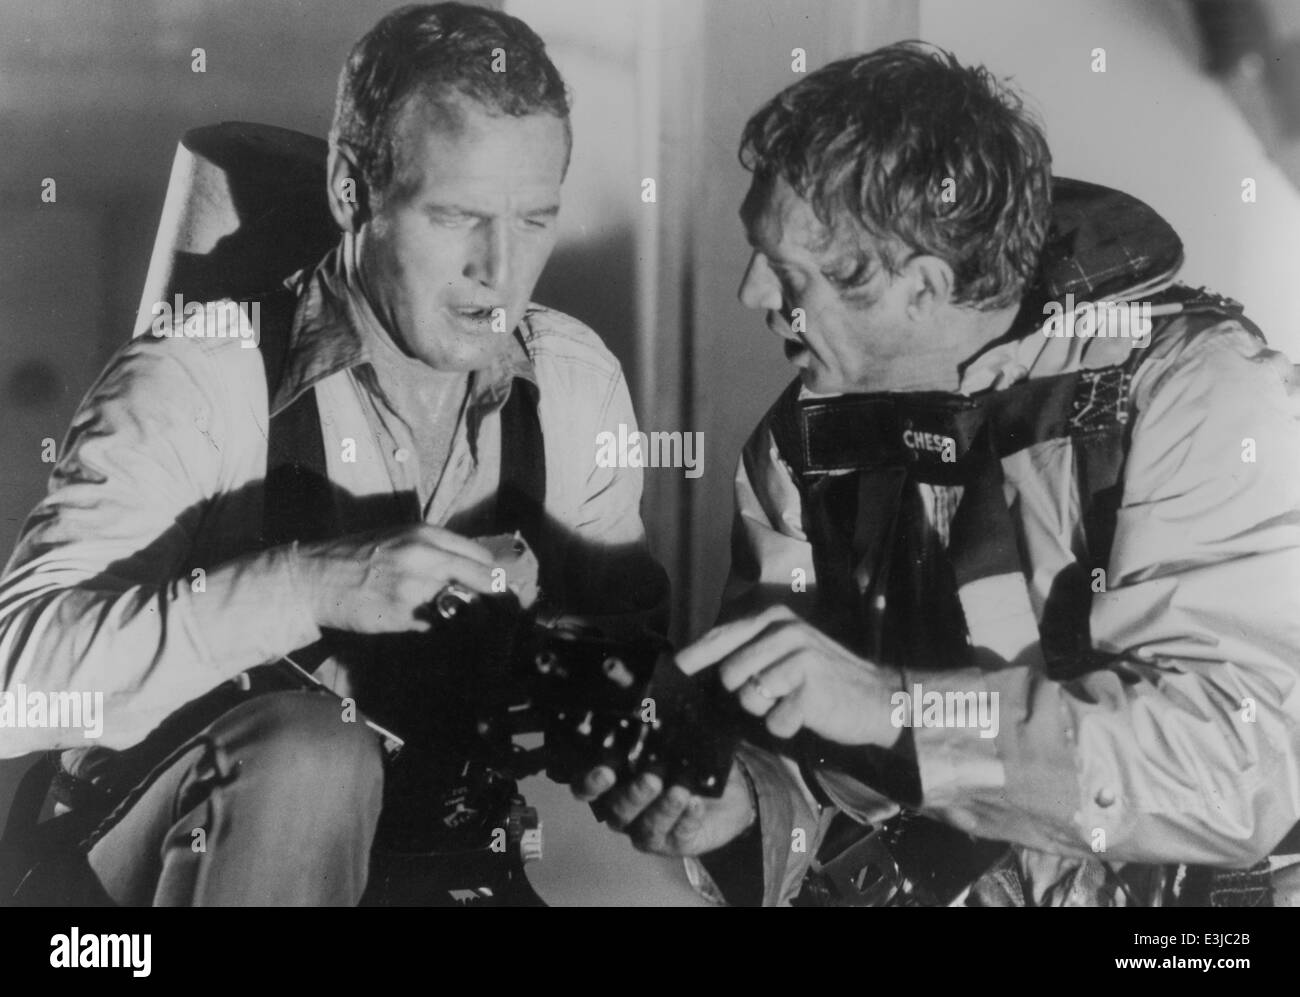 steve mc queen,paul newman,the towering inferno - Stock Image